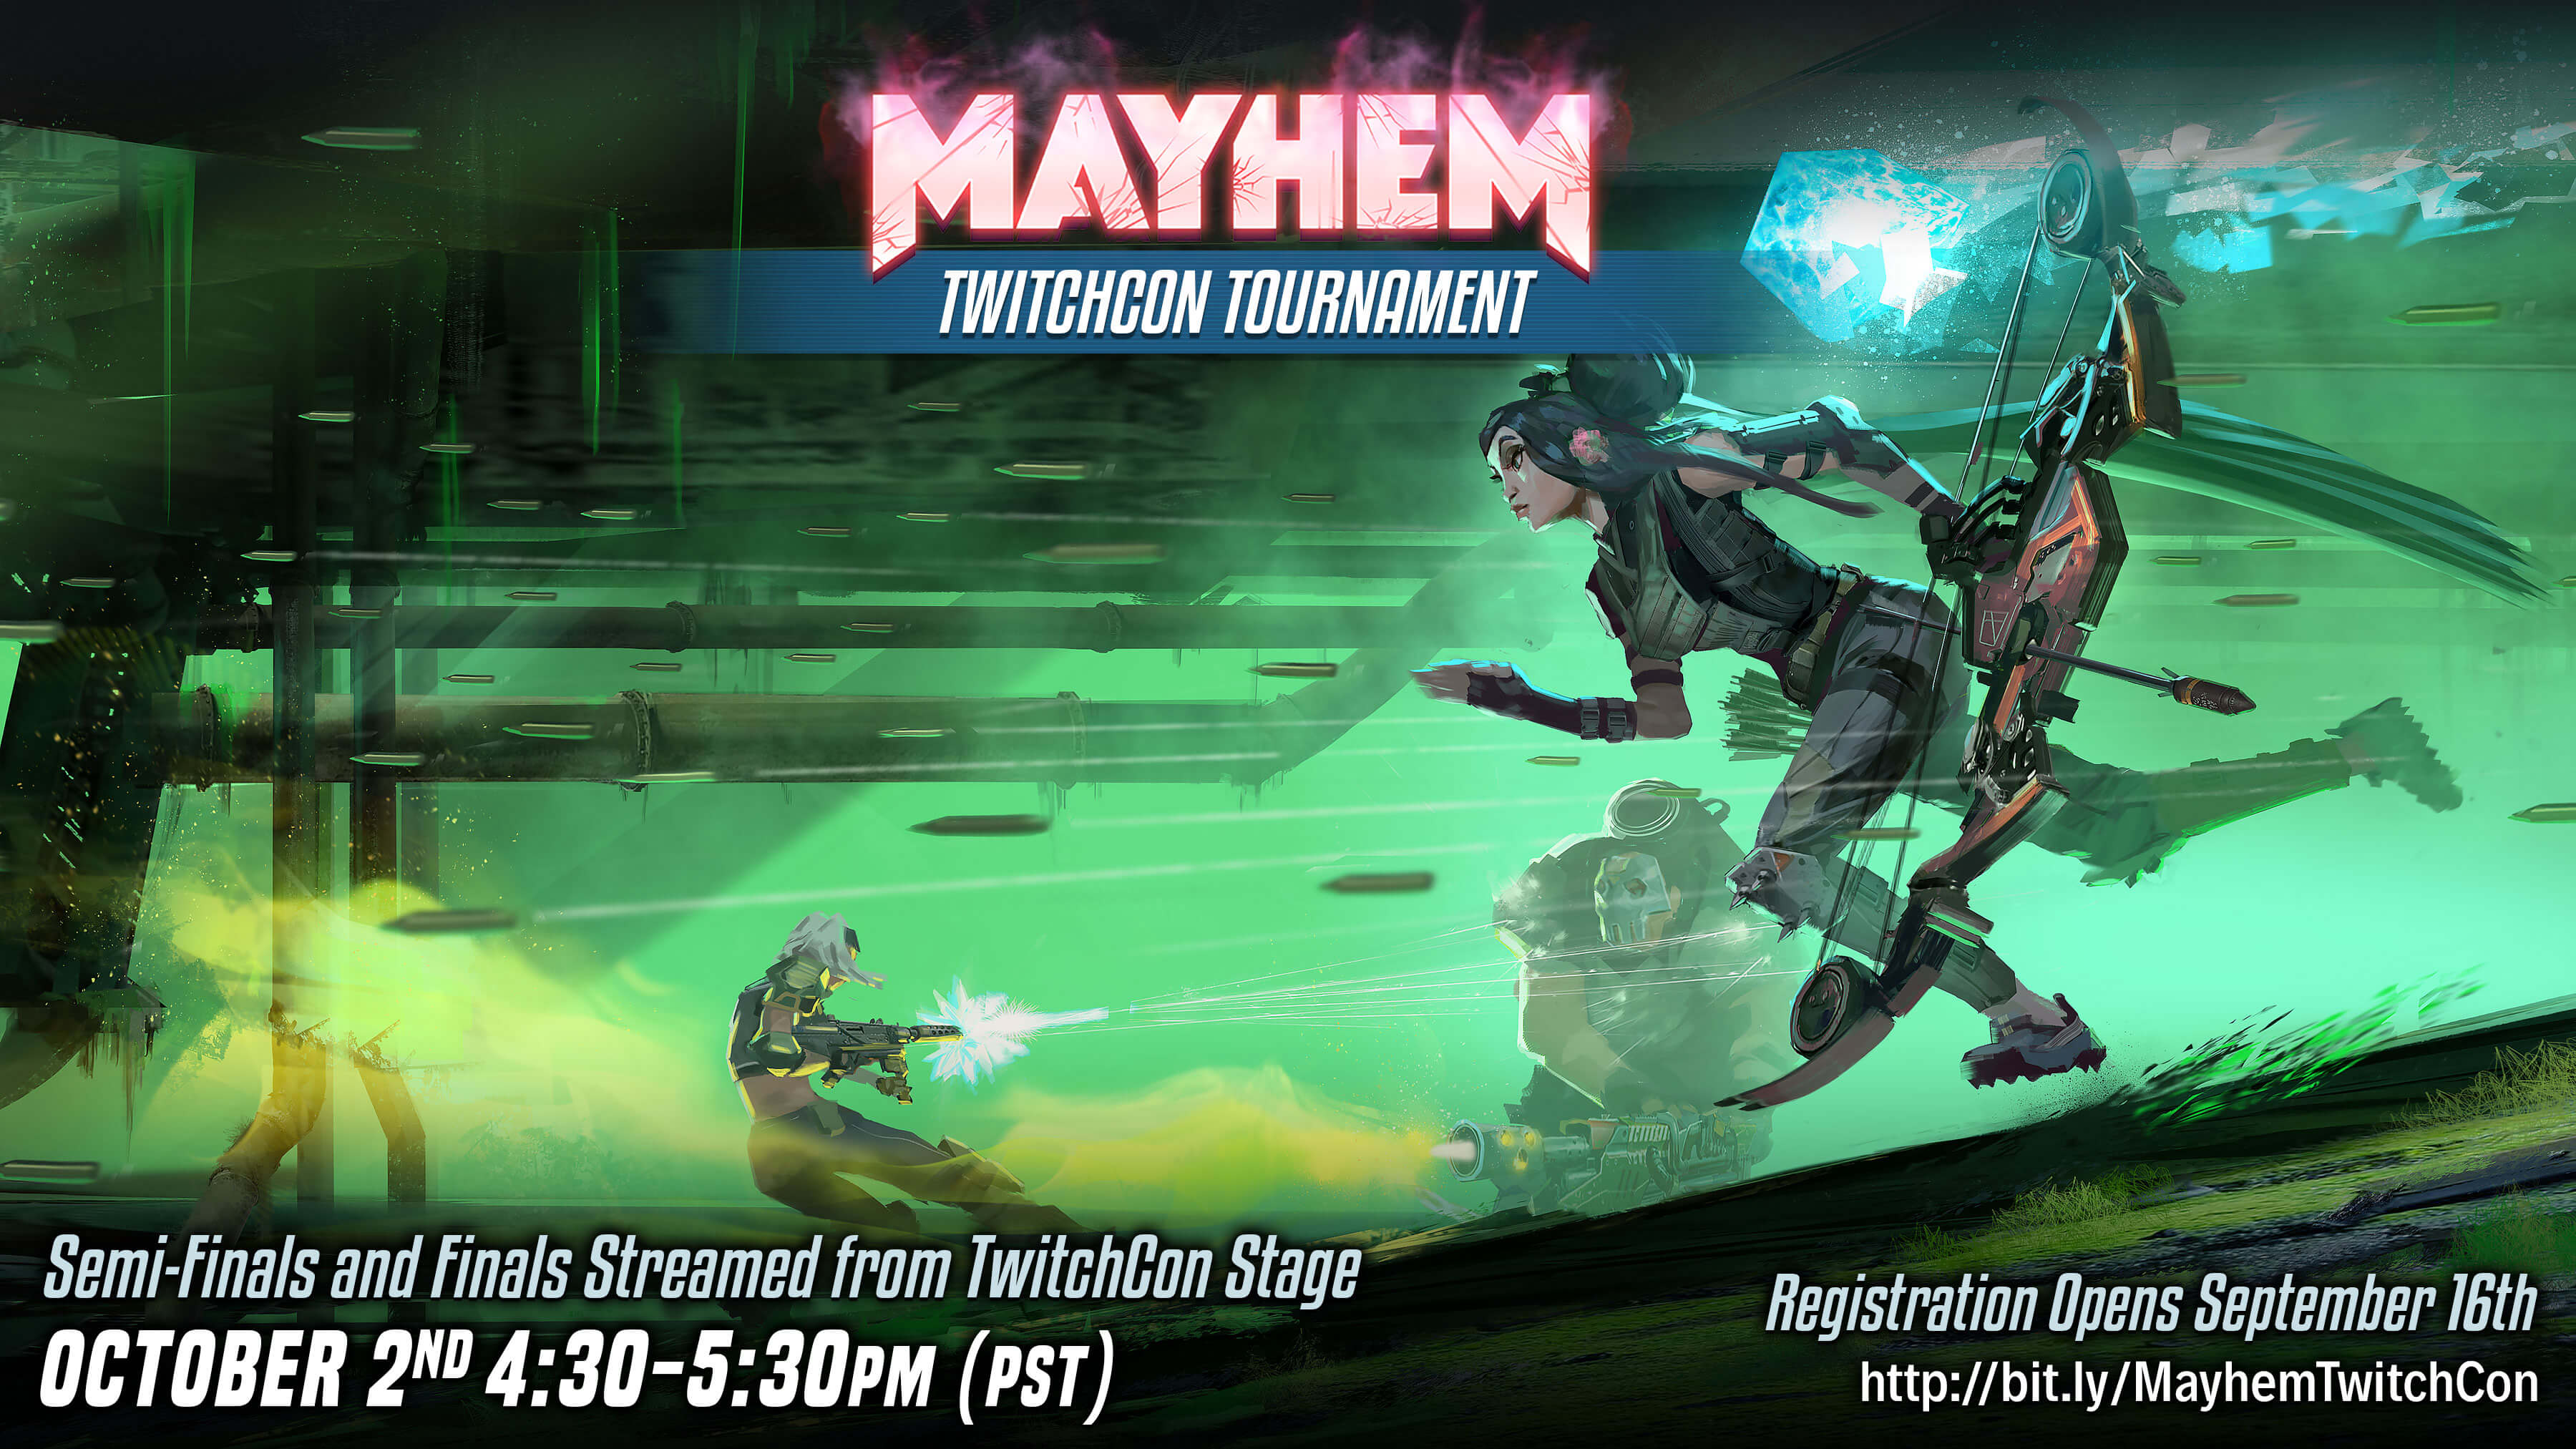 Mayhem TwitchCon Tournament